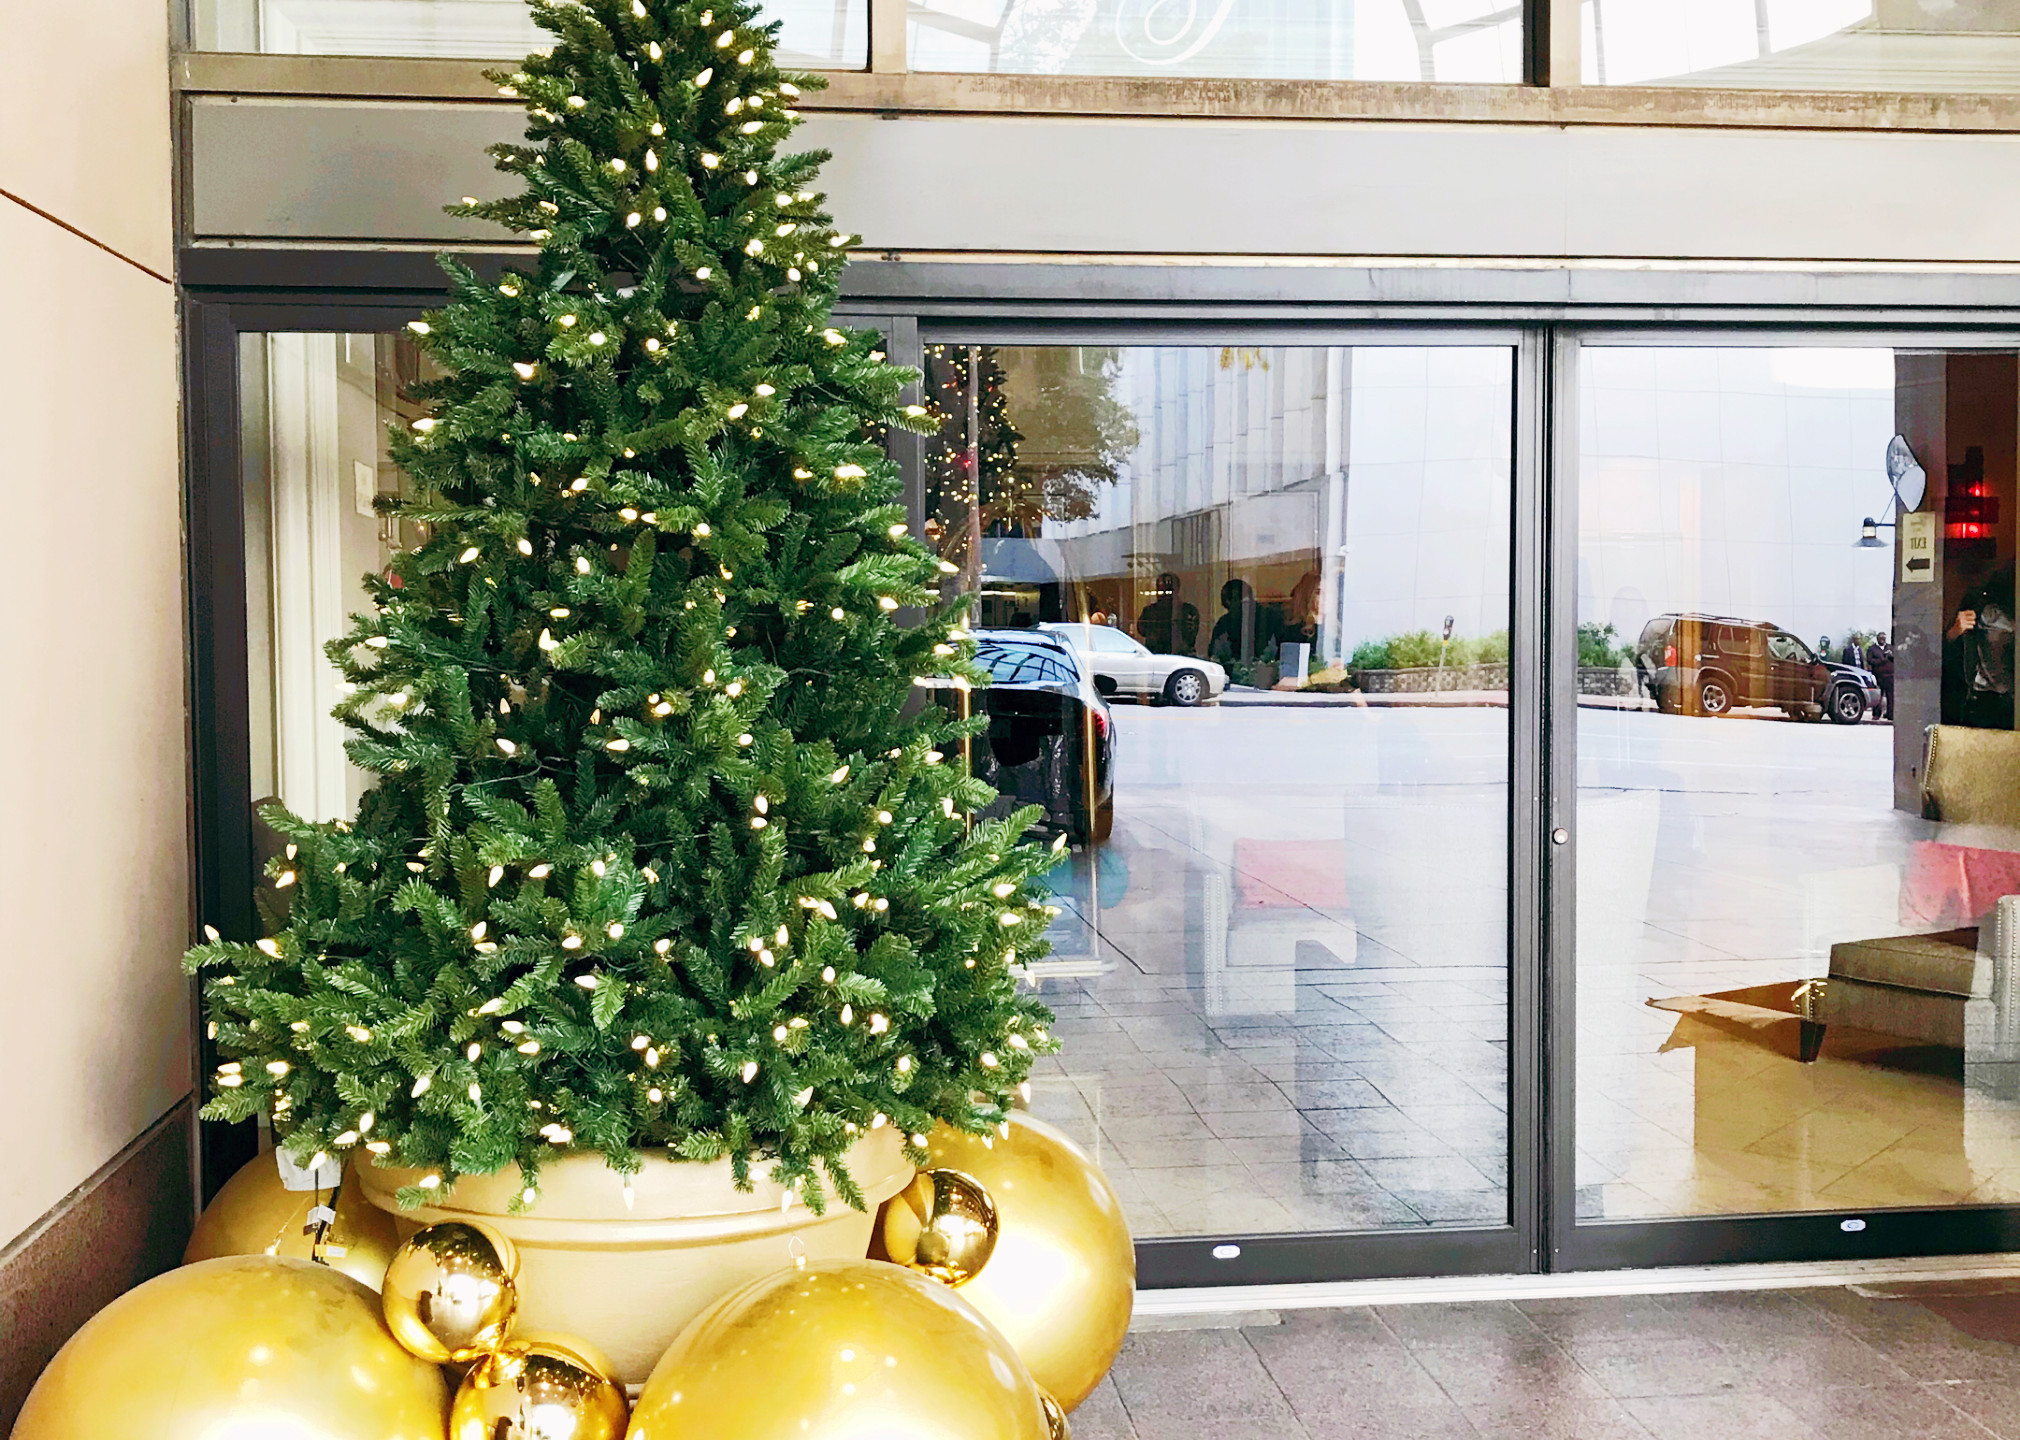 10 ft' Natural Christmas tree display designed by Franzie's Flower Design for the Fairmont Dallas hotel, located at valet.